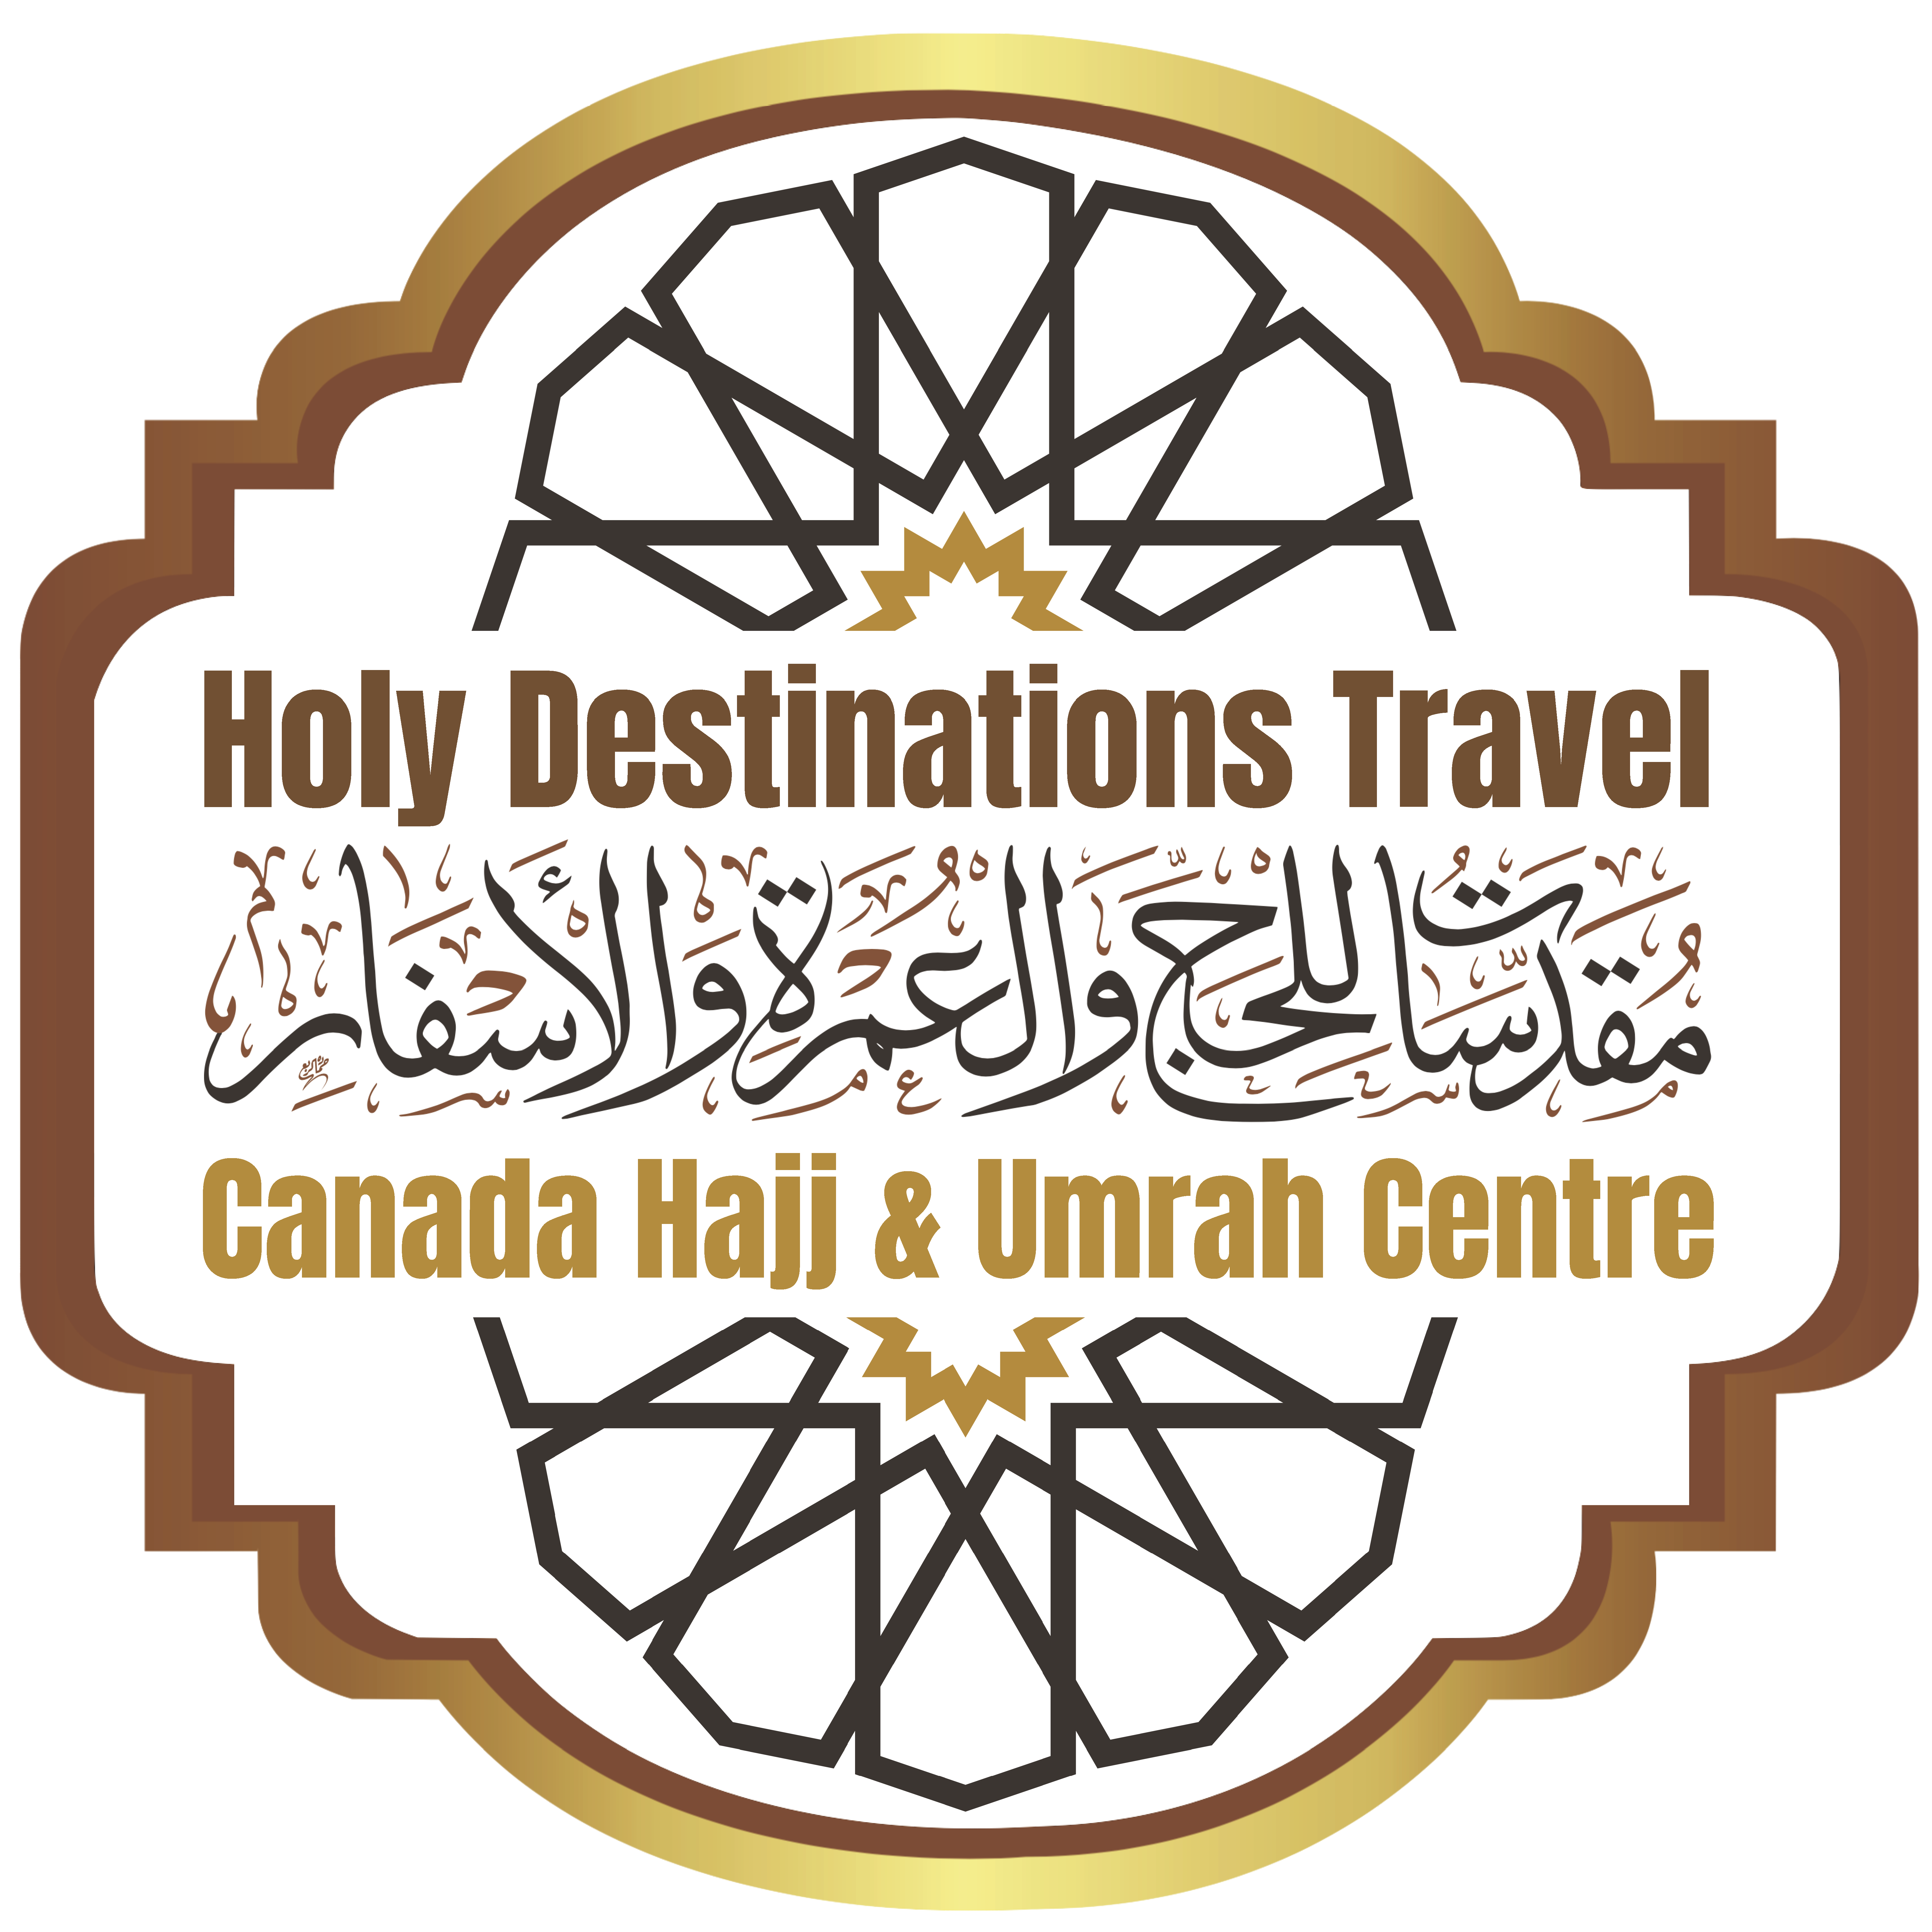 Holy Destinations Travel